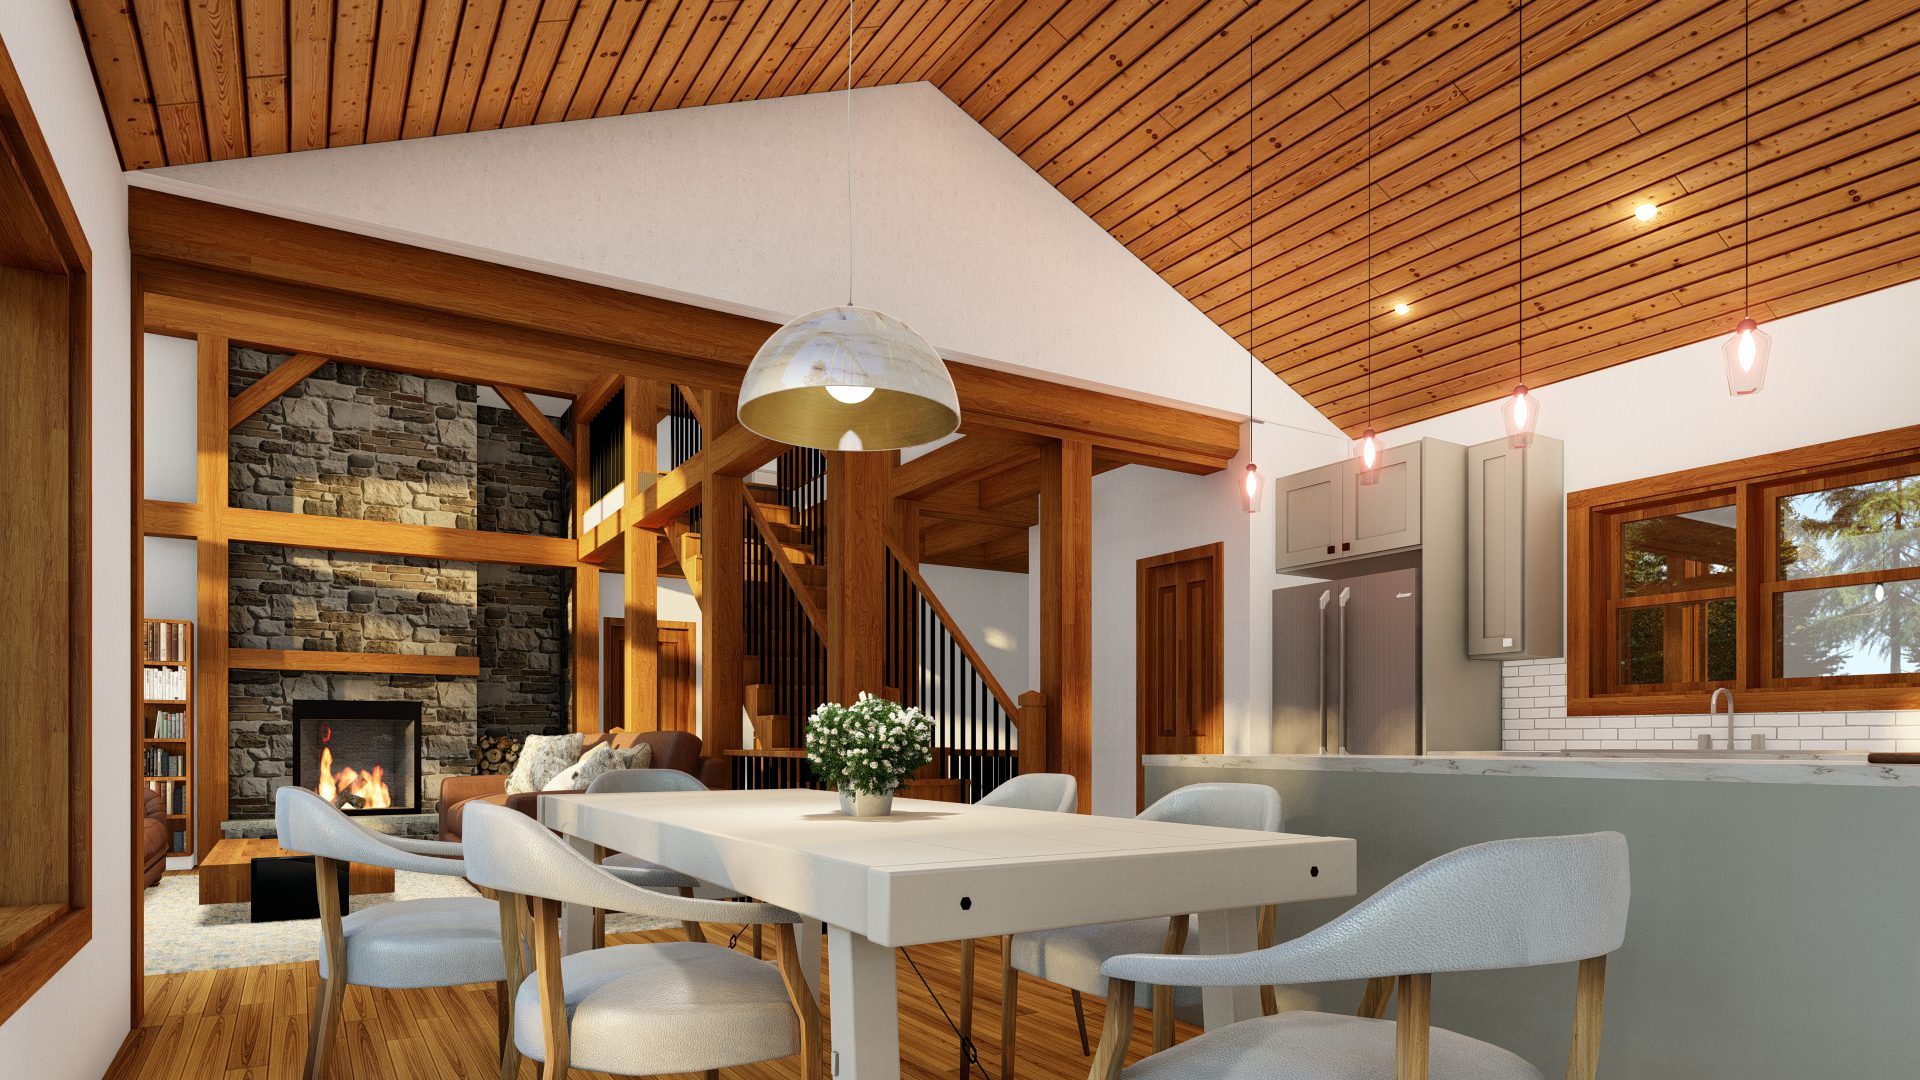 Normerica Timber Frames, House Plans, The Tobermory 3949, Interior, Dining Room